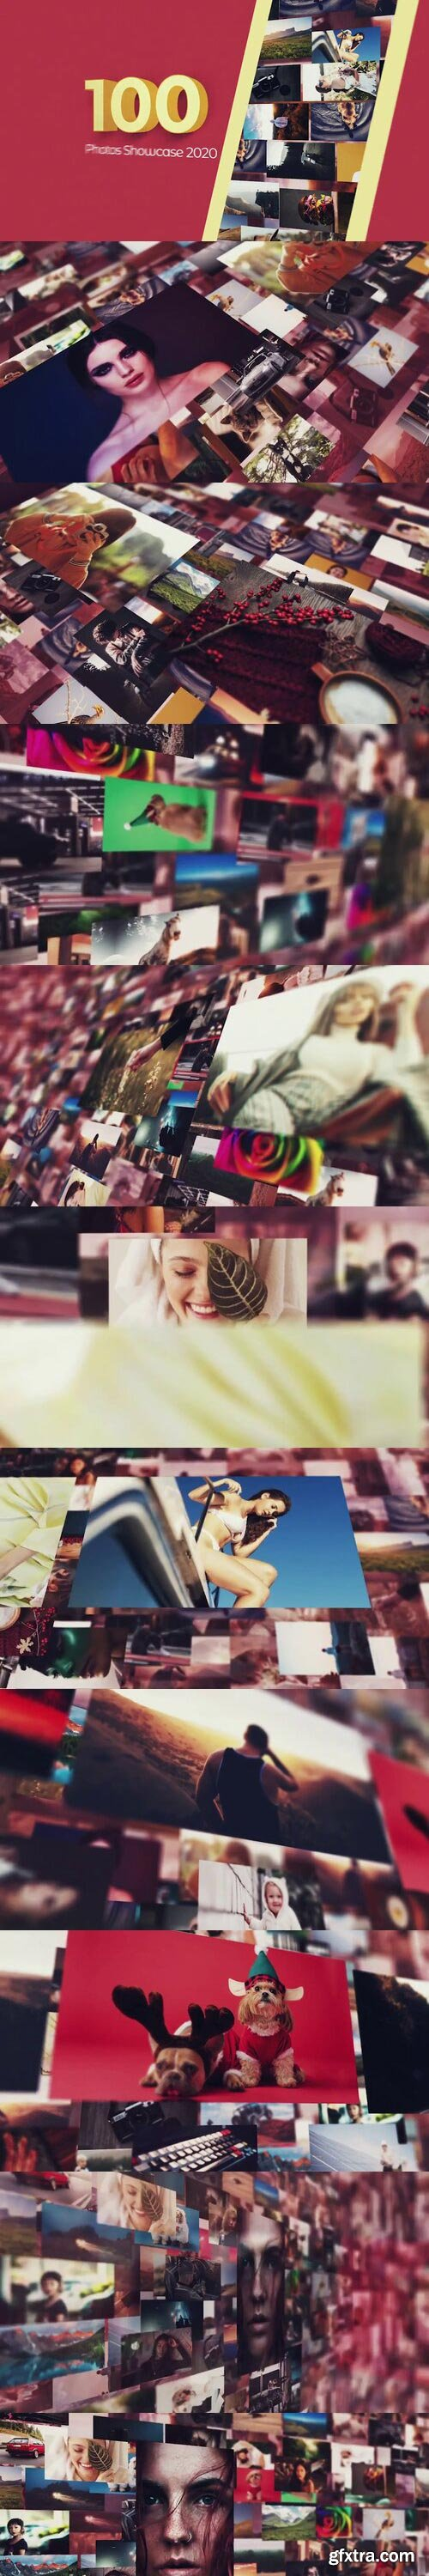 Videohive - 100 Photos Showcase Intro - 29886638